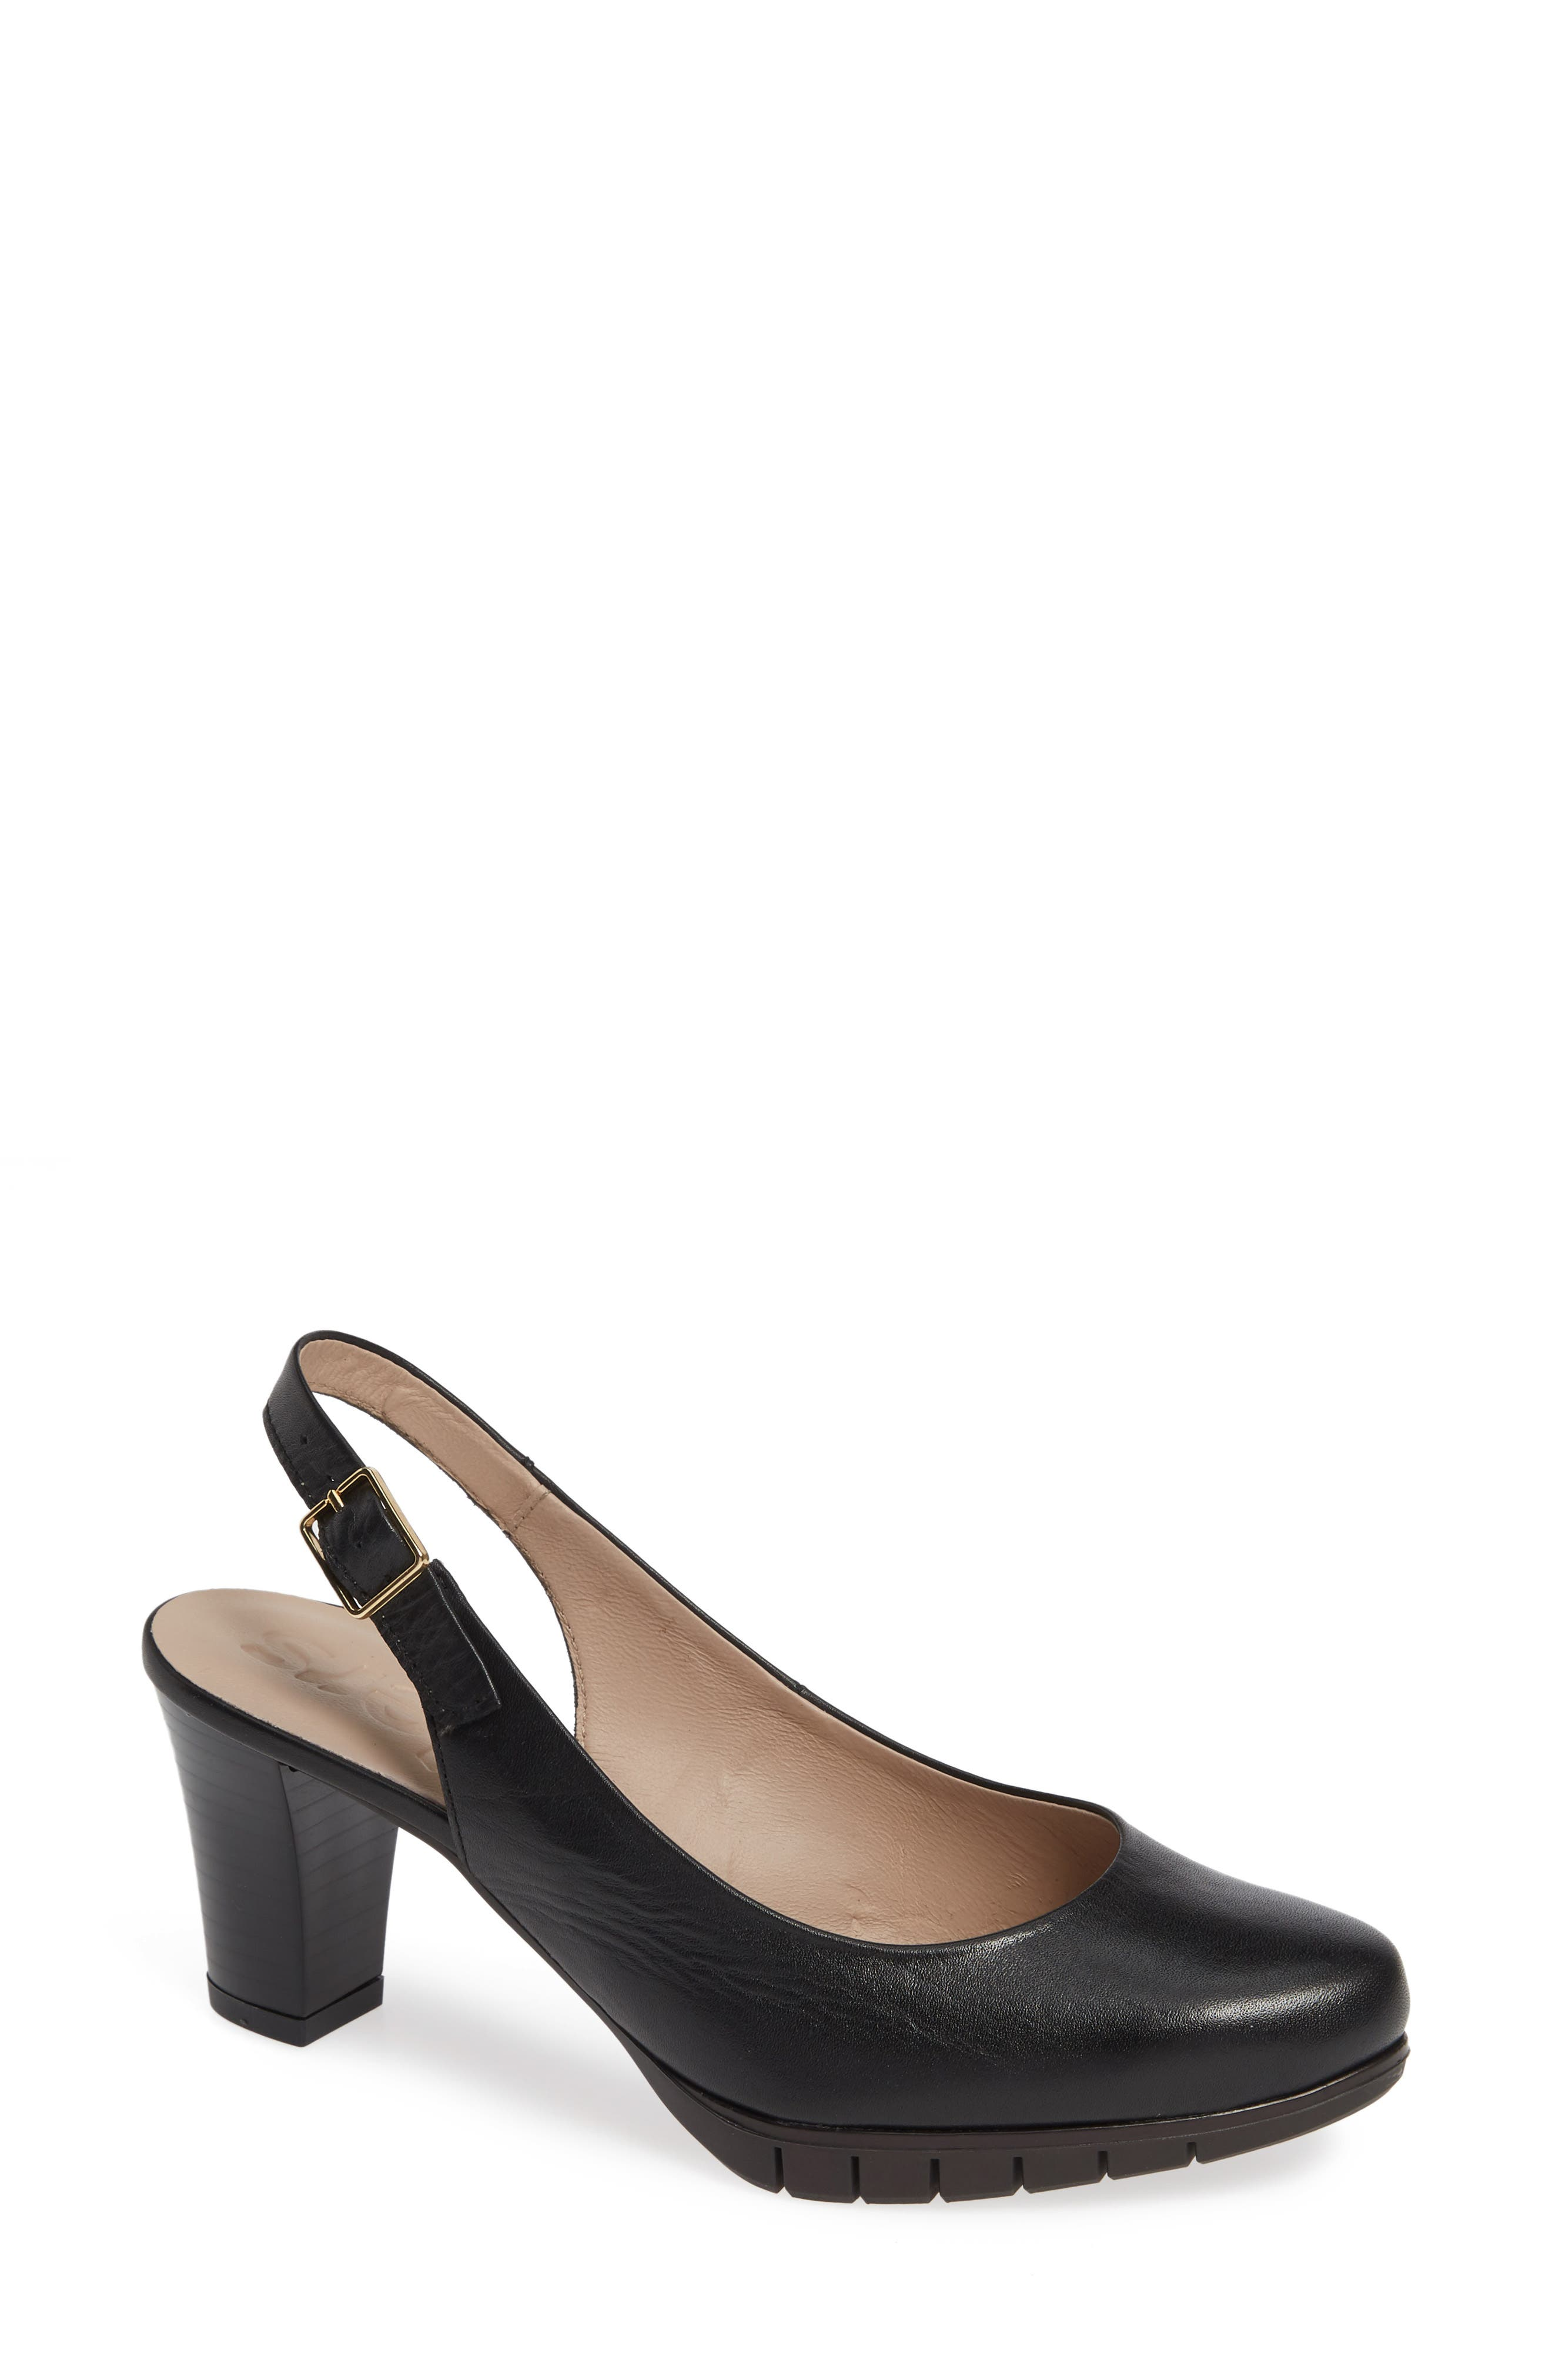 A desk-to-dinner slingback pump makes every step confident and comfortable with a memory-gel footbed and flex-groove sole that provides shock absorption. Style Name: Wonders Slingback Pump (Women). Style Number: 5764539. Available in stores.